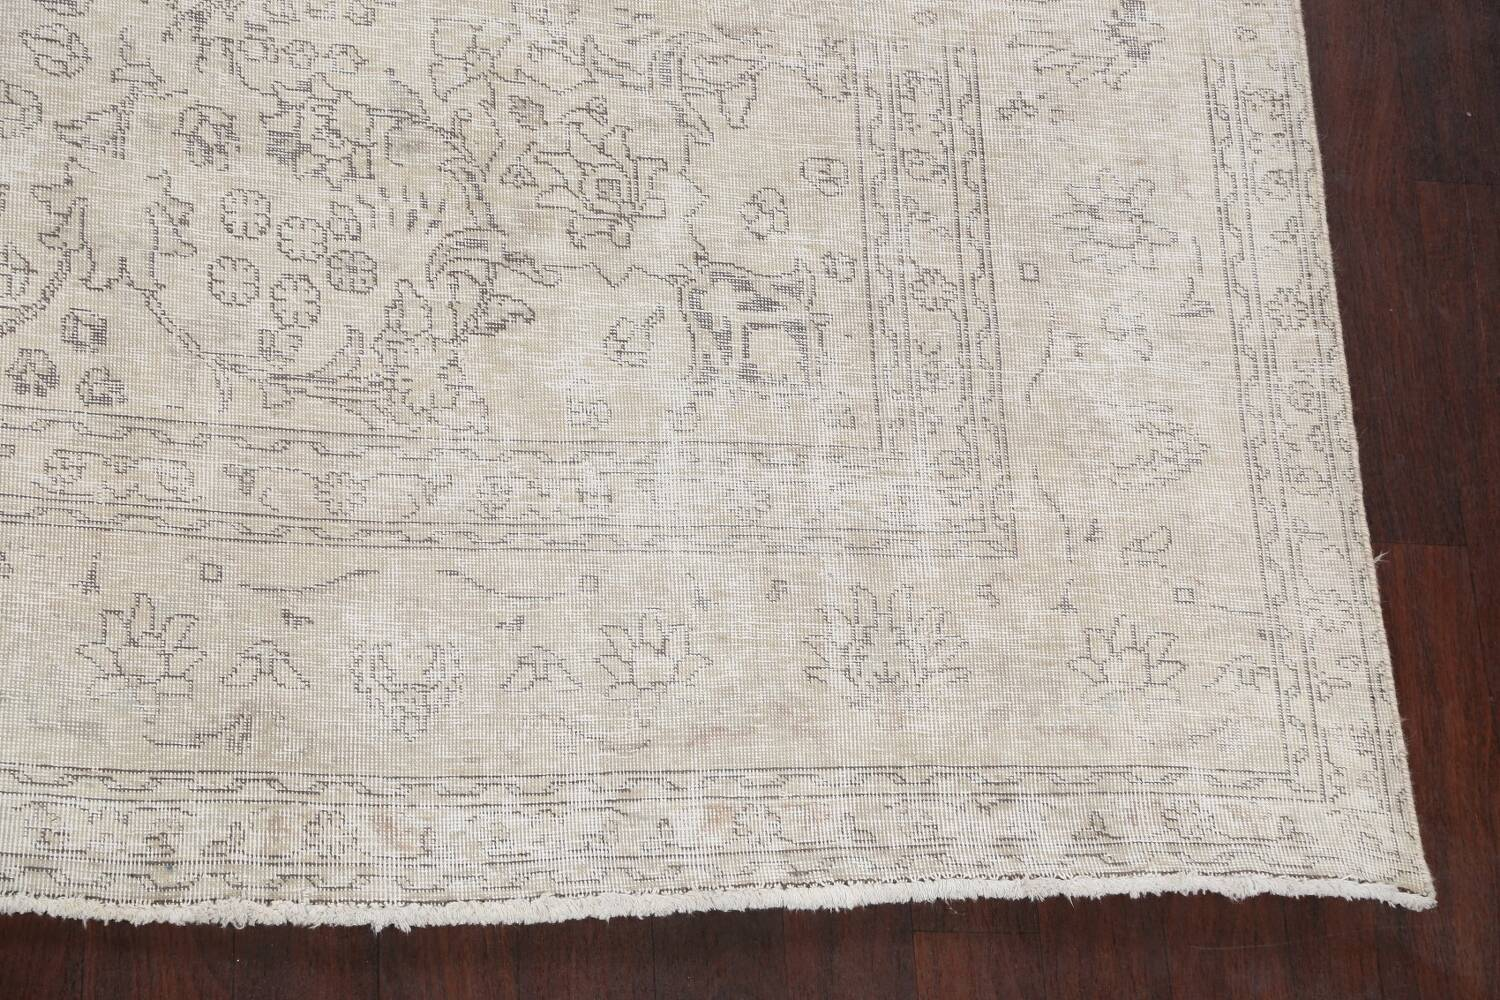 Antique Muted Vintage Distressed Oriental Area Rug 9x12 image 5